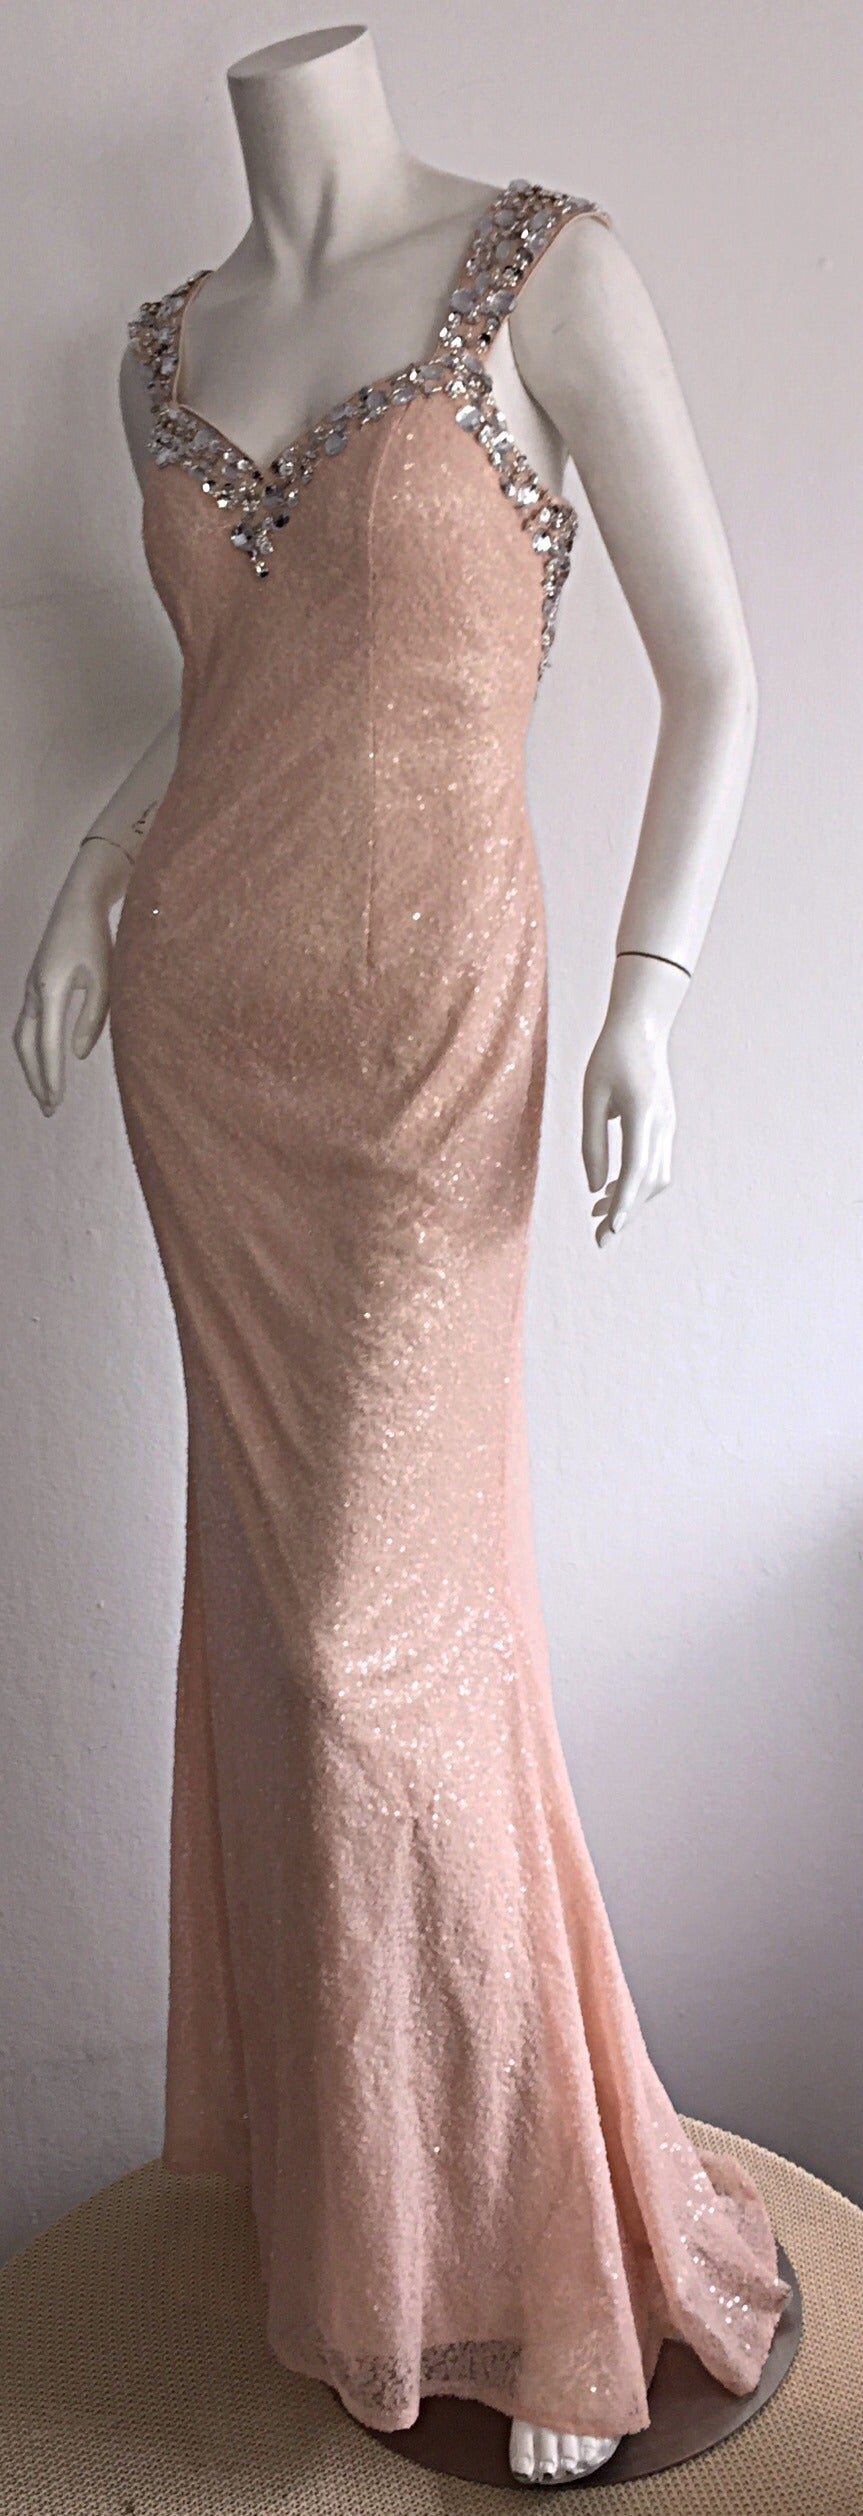 Stunning Early 1990s Custom All Over Sequin + Crystals Pink Vintage Mermaid Gown 2